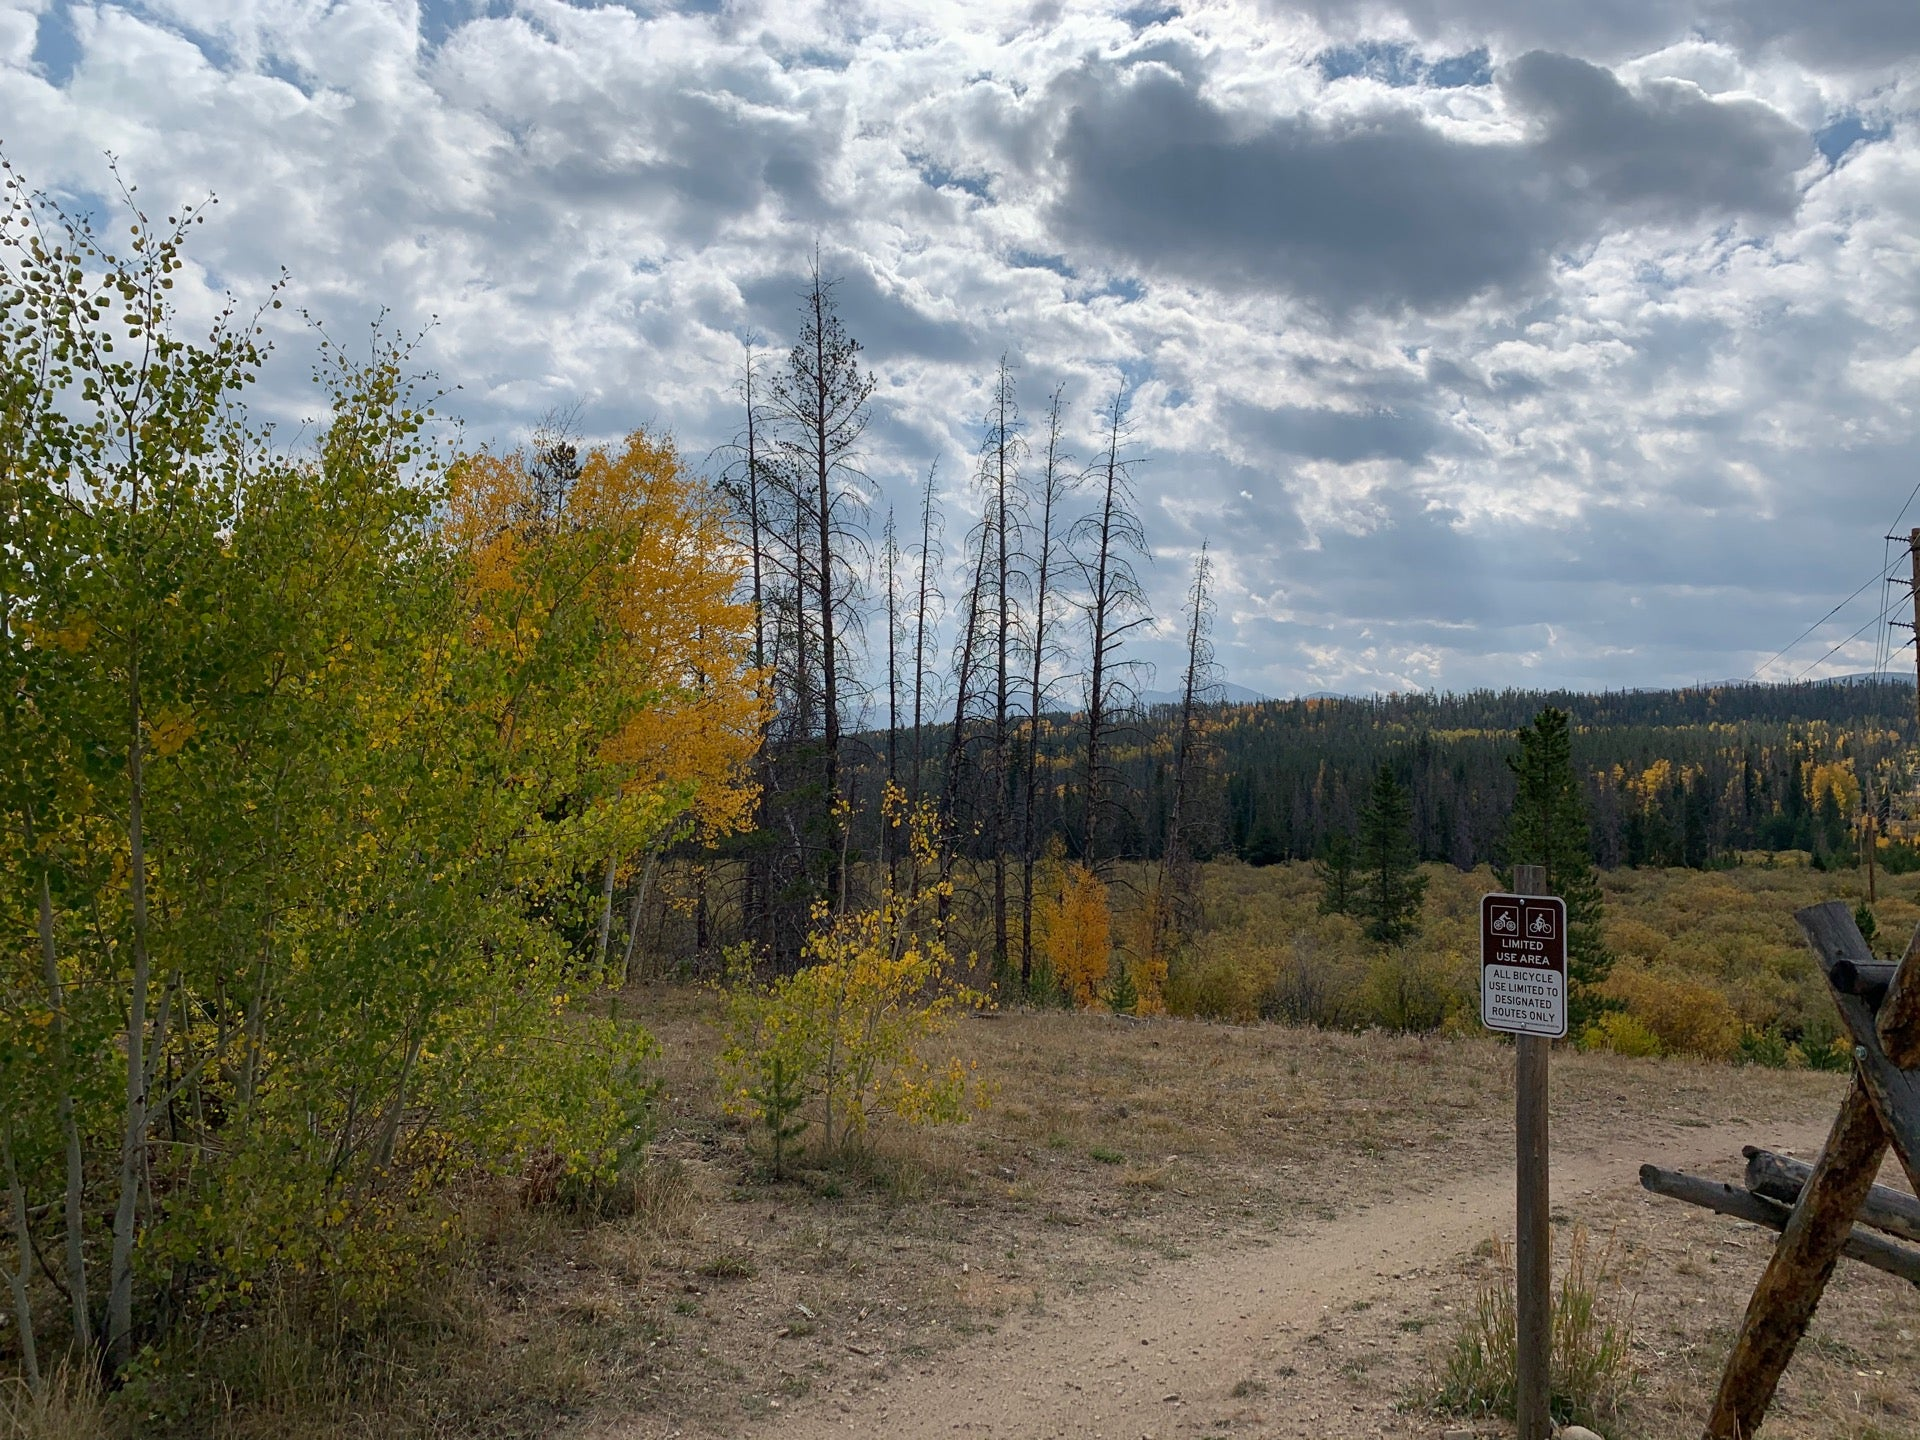 Checked in at Creekside Mountain Bike Loop